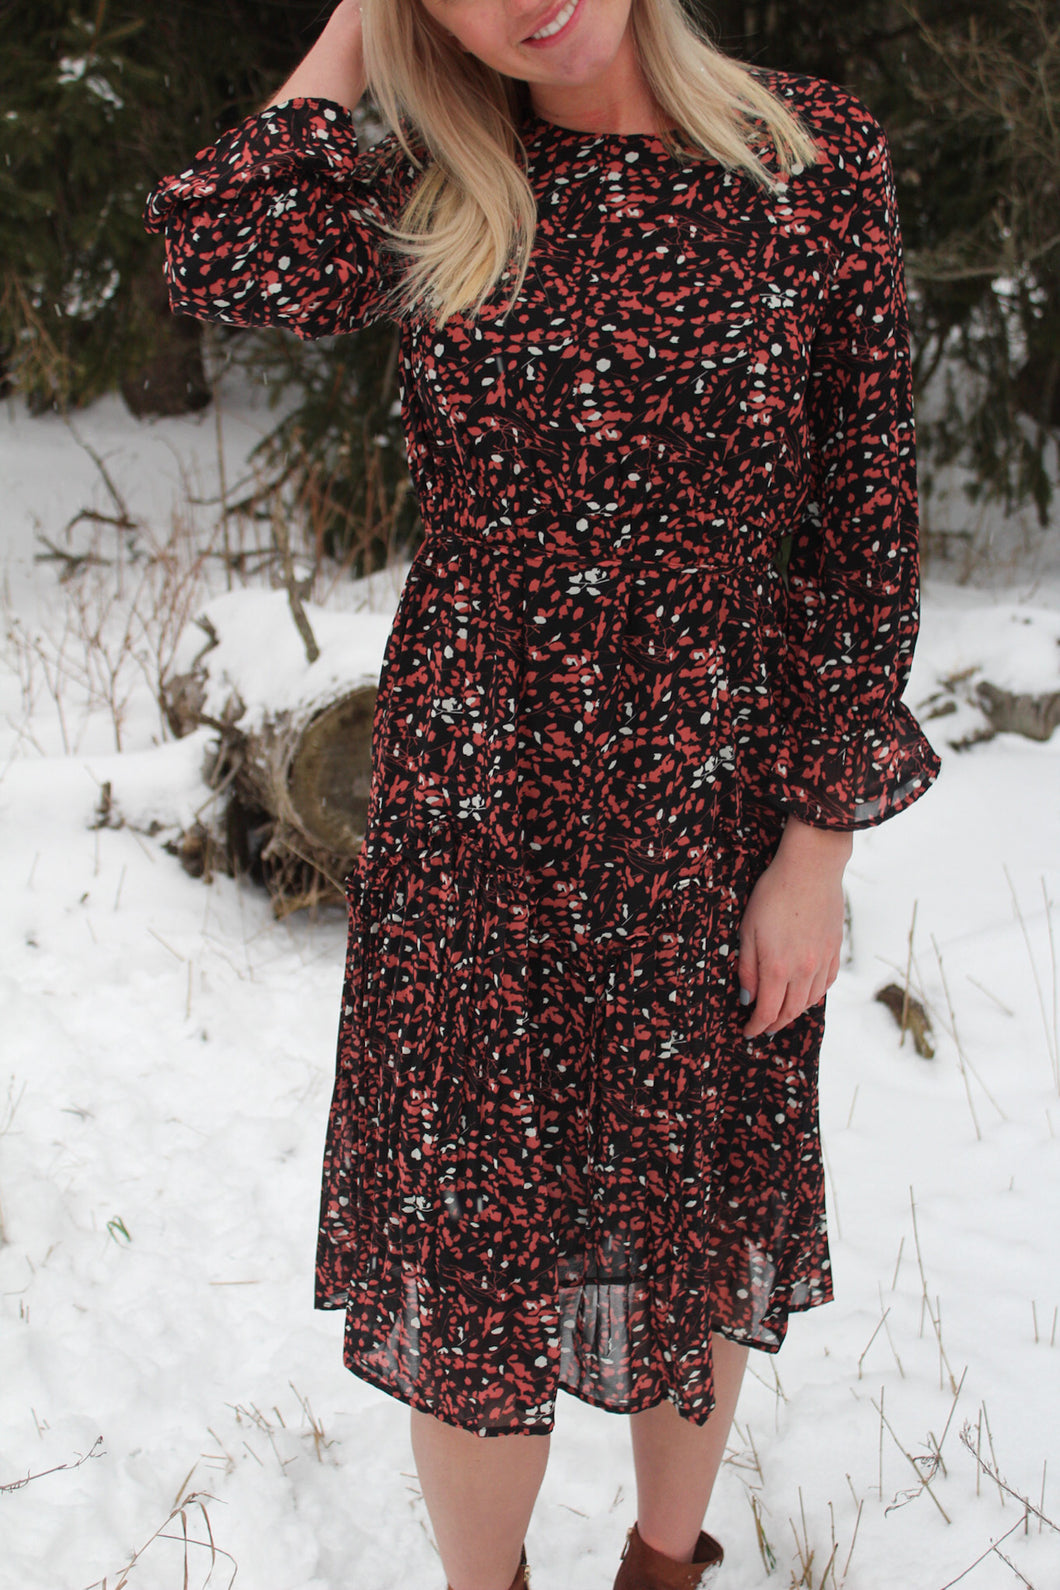 The Katie Floral Dress